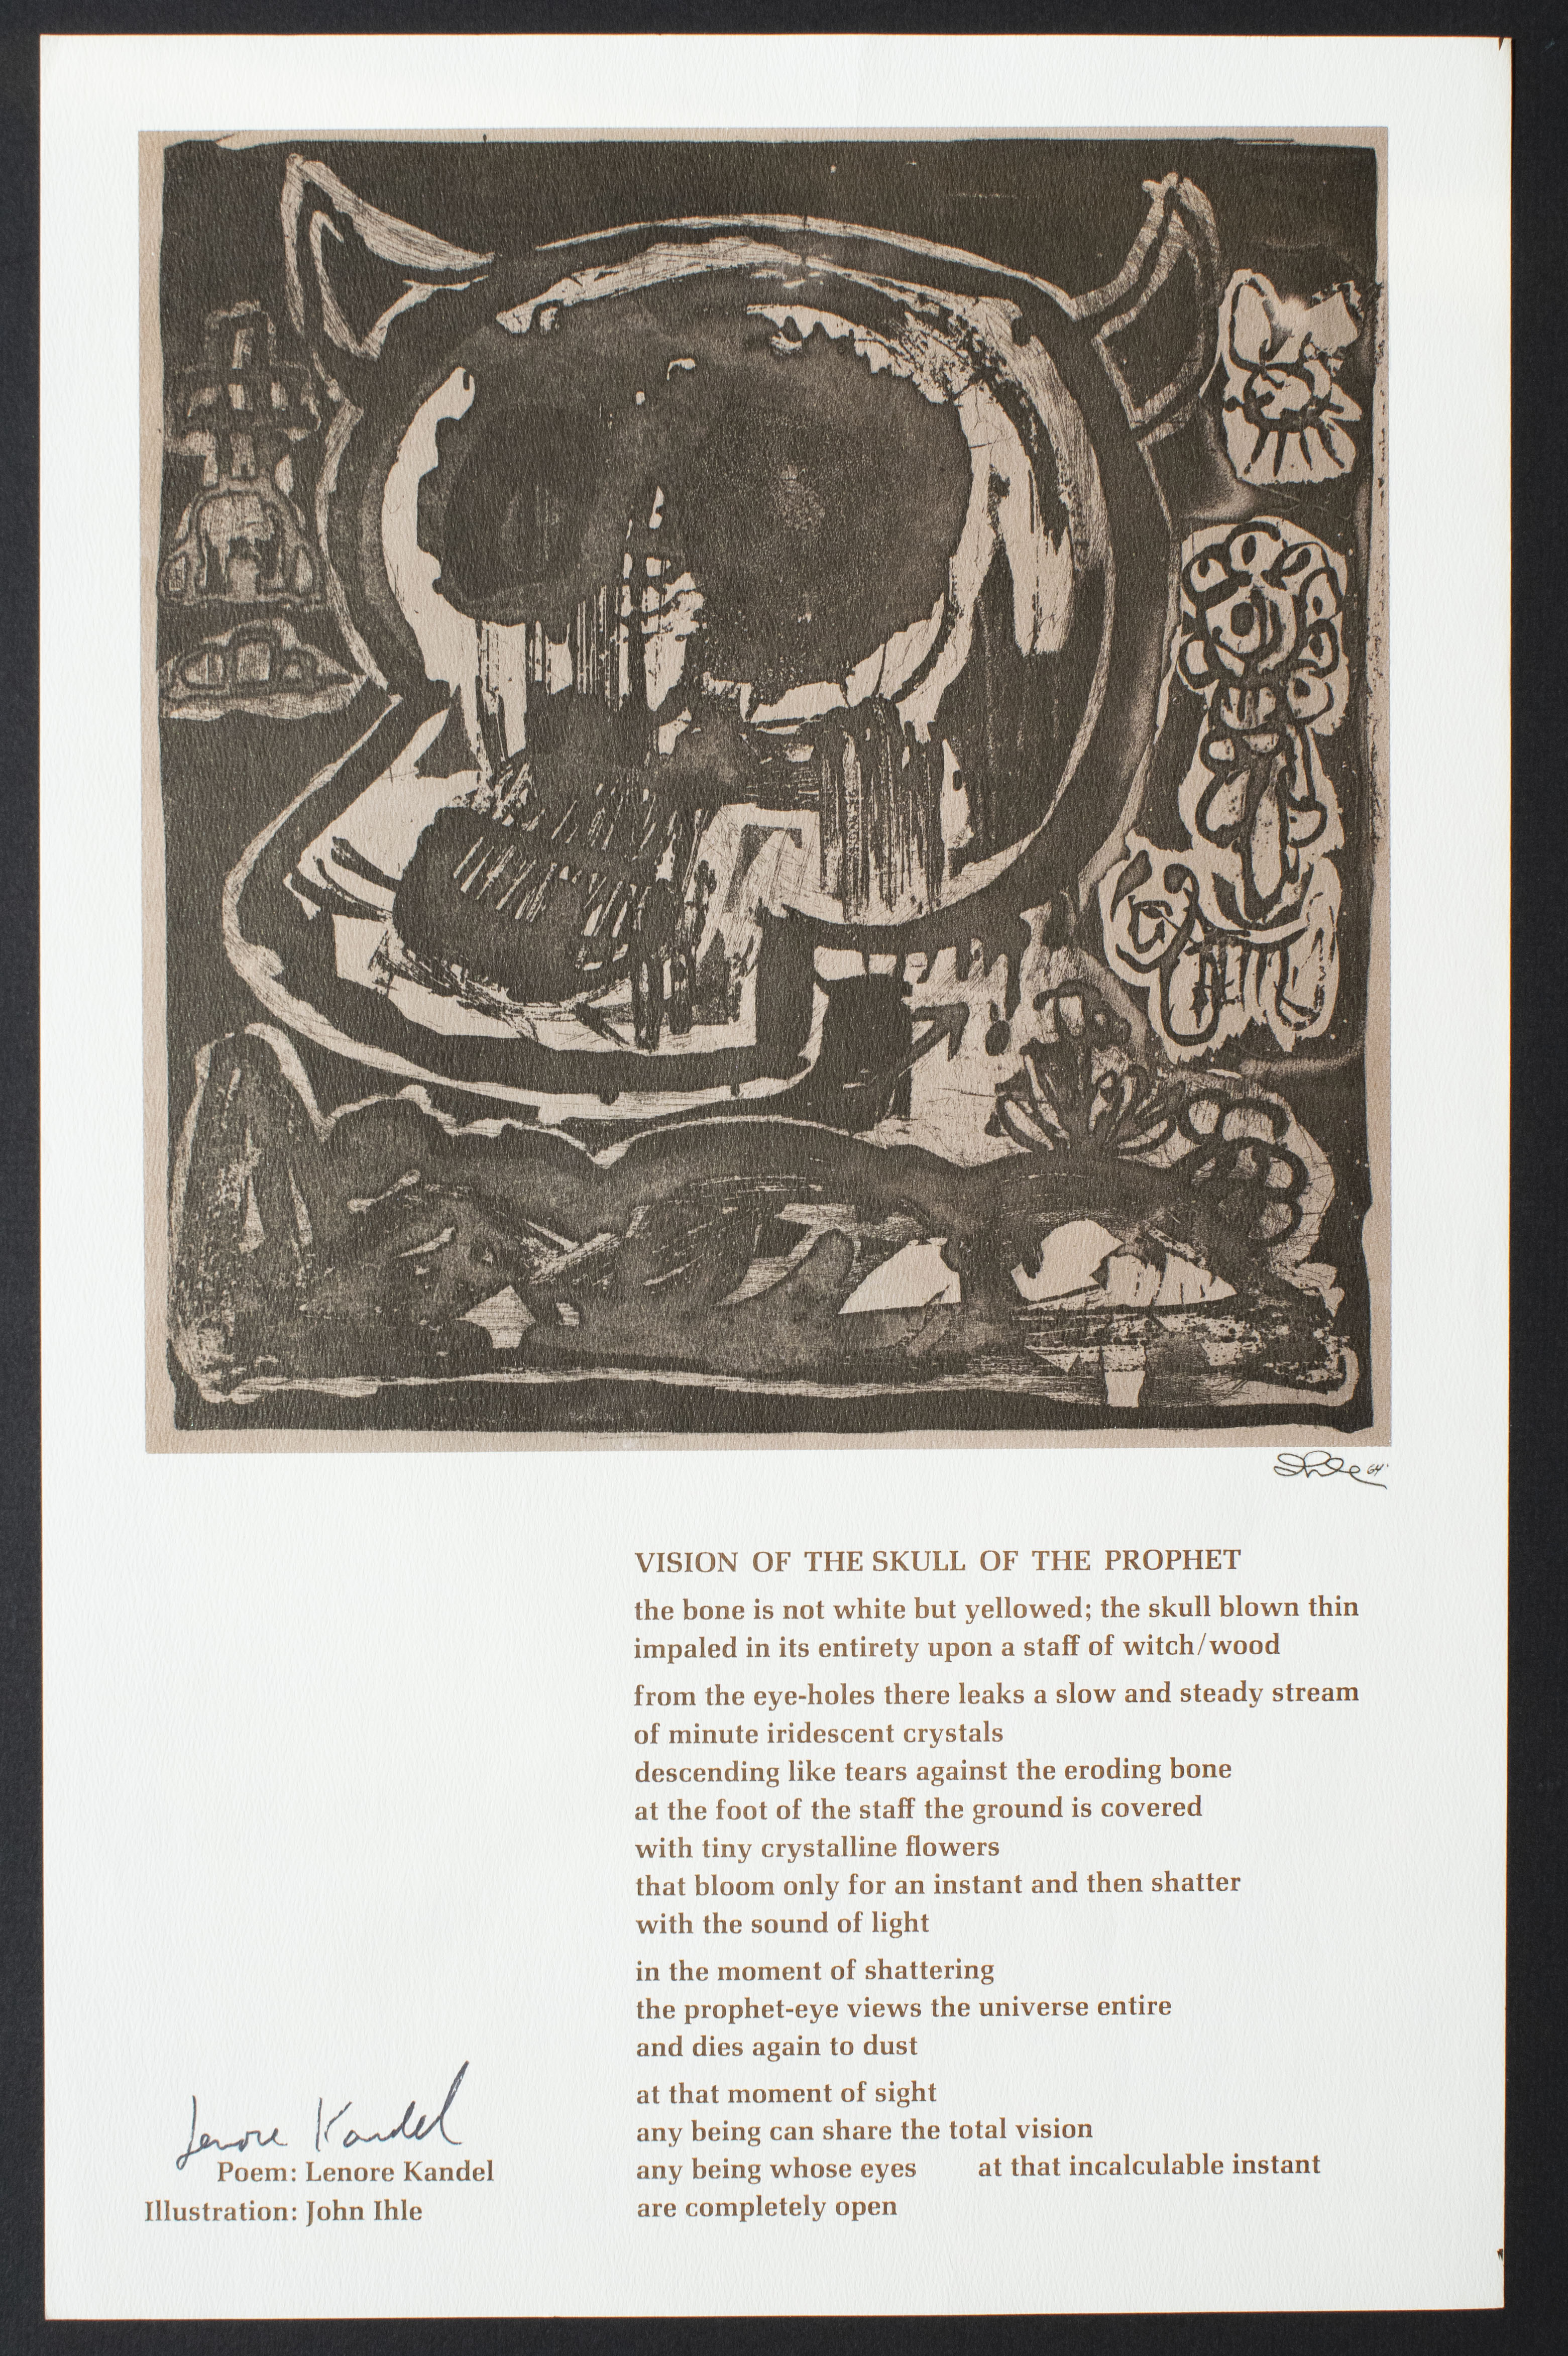 Lenore Kandel and John Ihle. Vision of the Skull of the Prophet, 1964